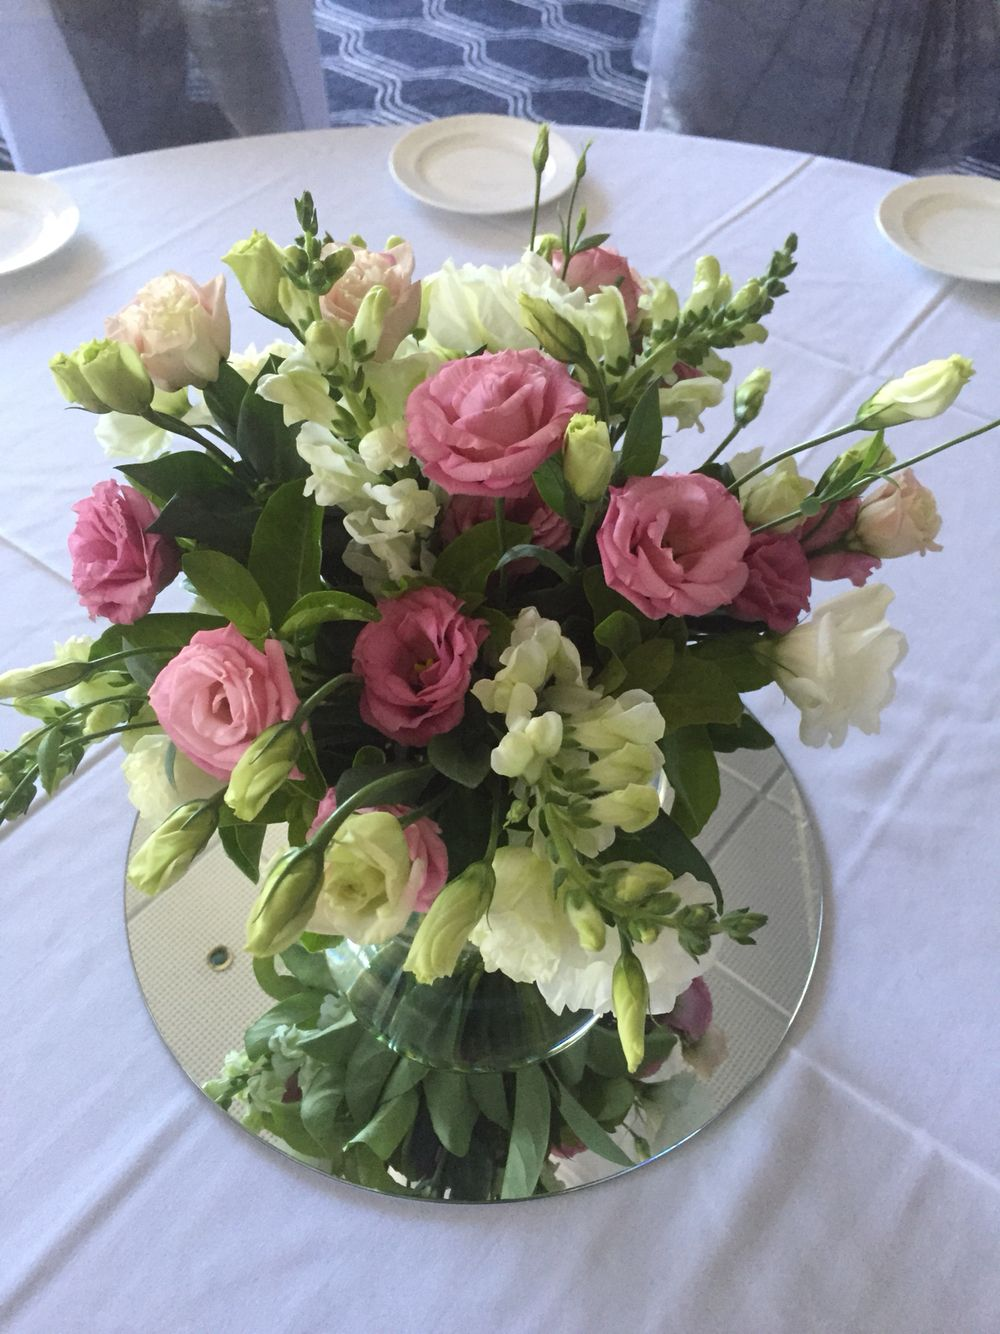 Fishbowl Filled With Fresh Elegant Blooms For A Wedding Centrepiece